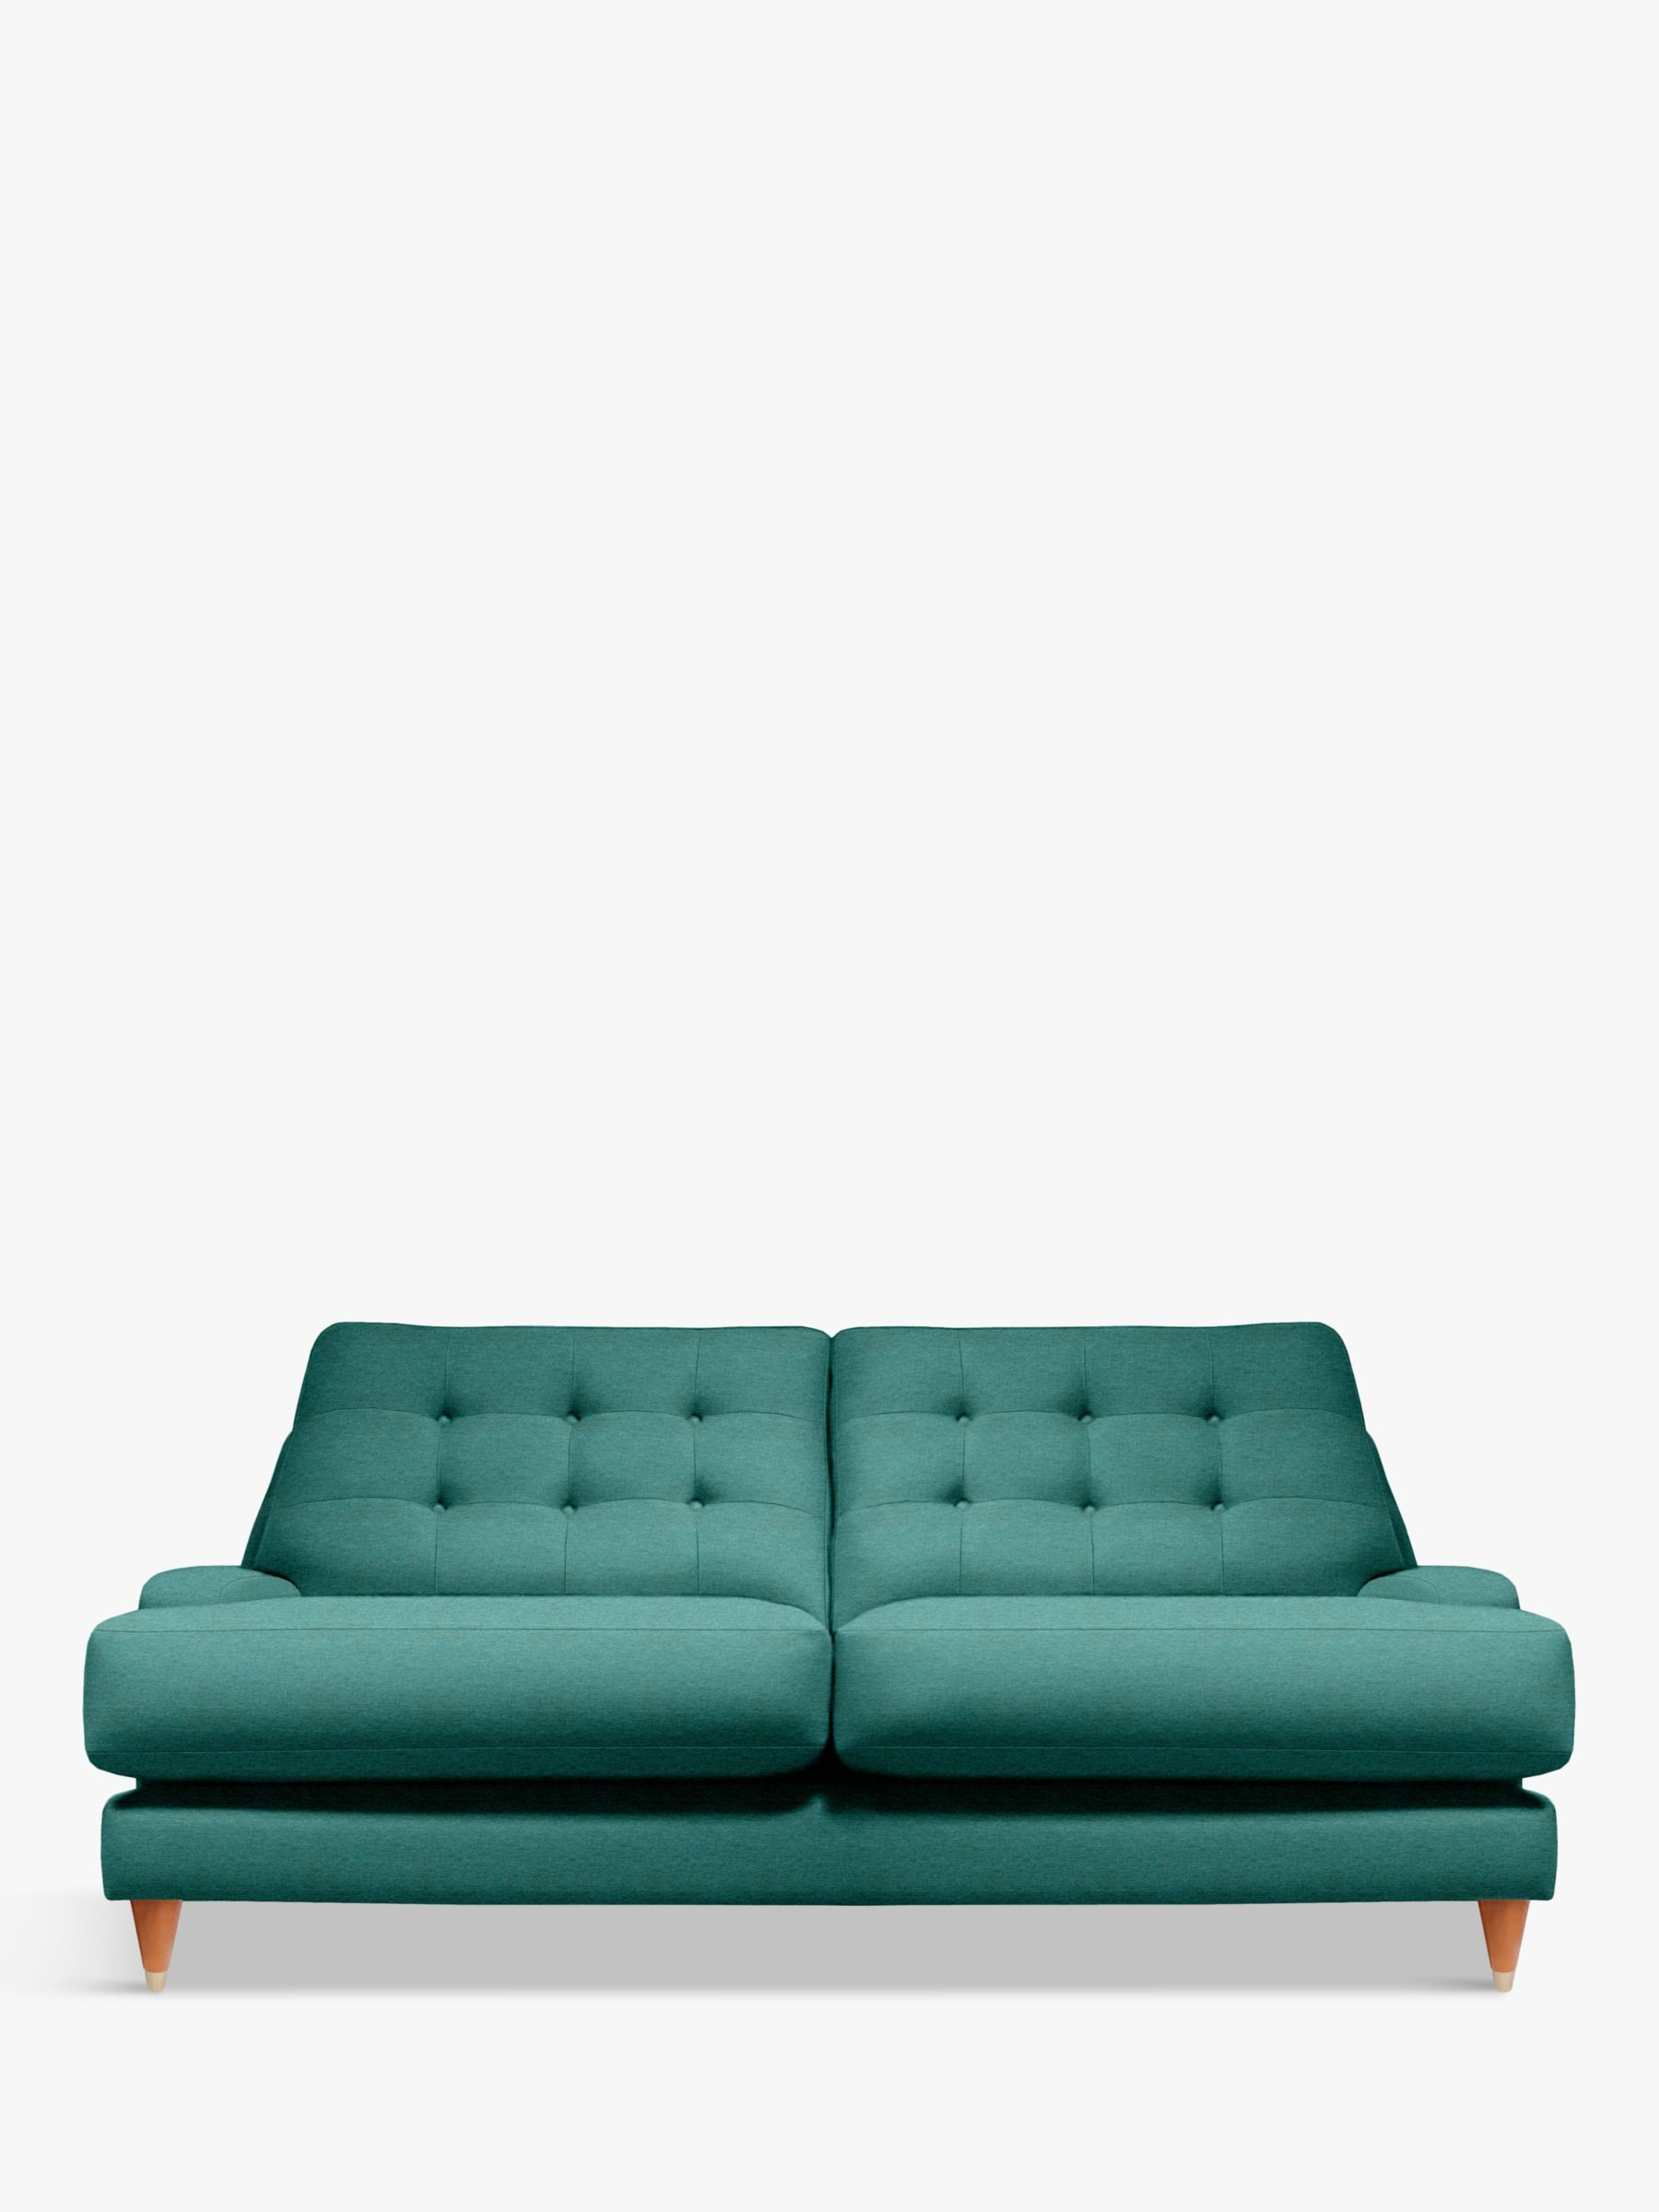 G Plan Vintage G Plan Vintage The Fifty Seven Large 3 Seater Sofa